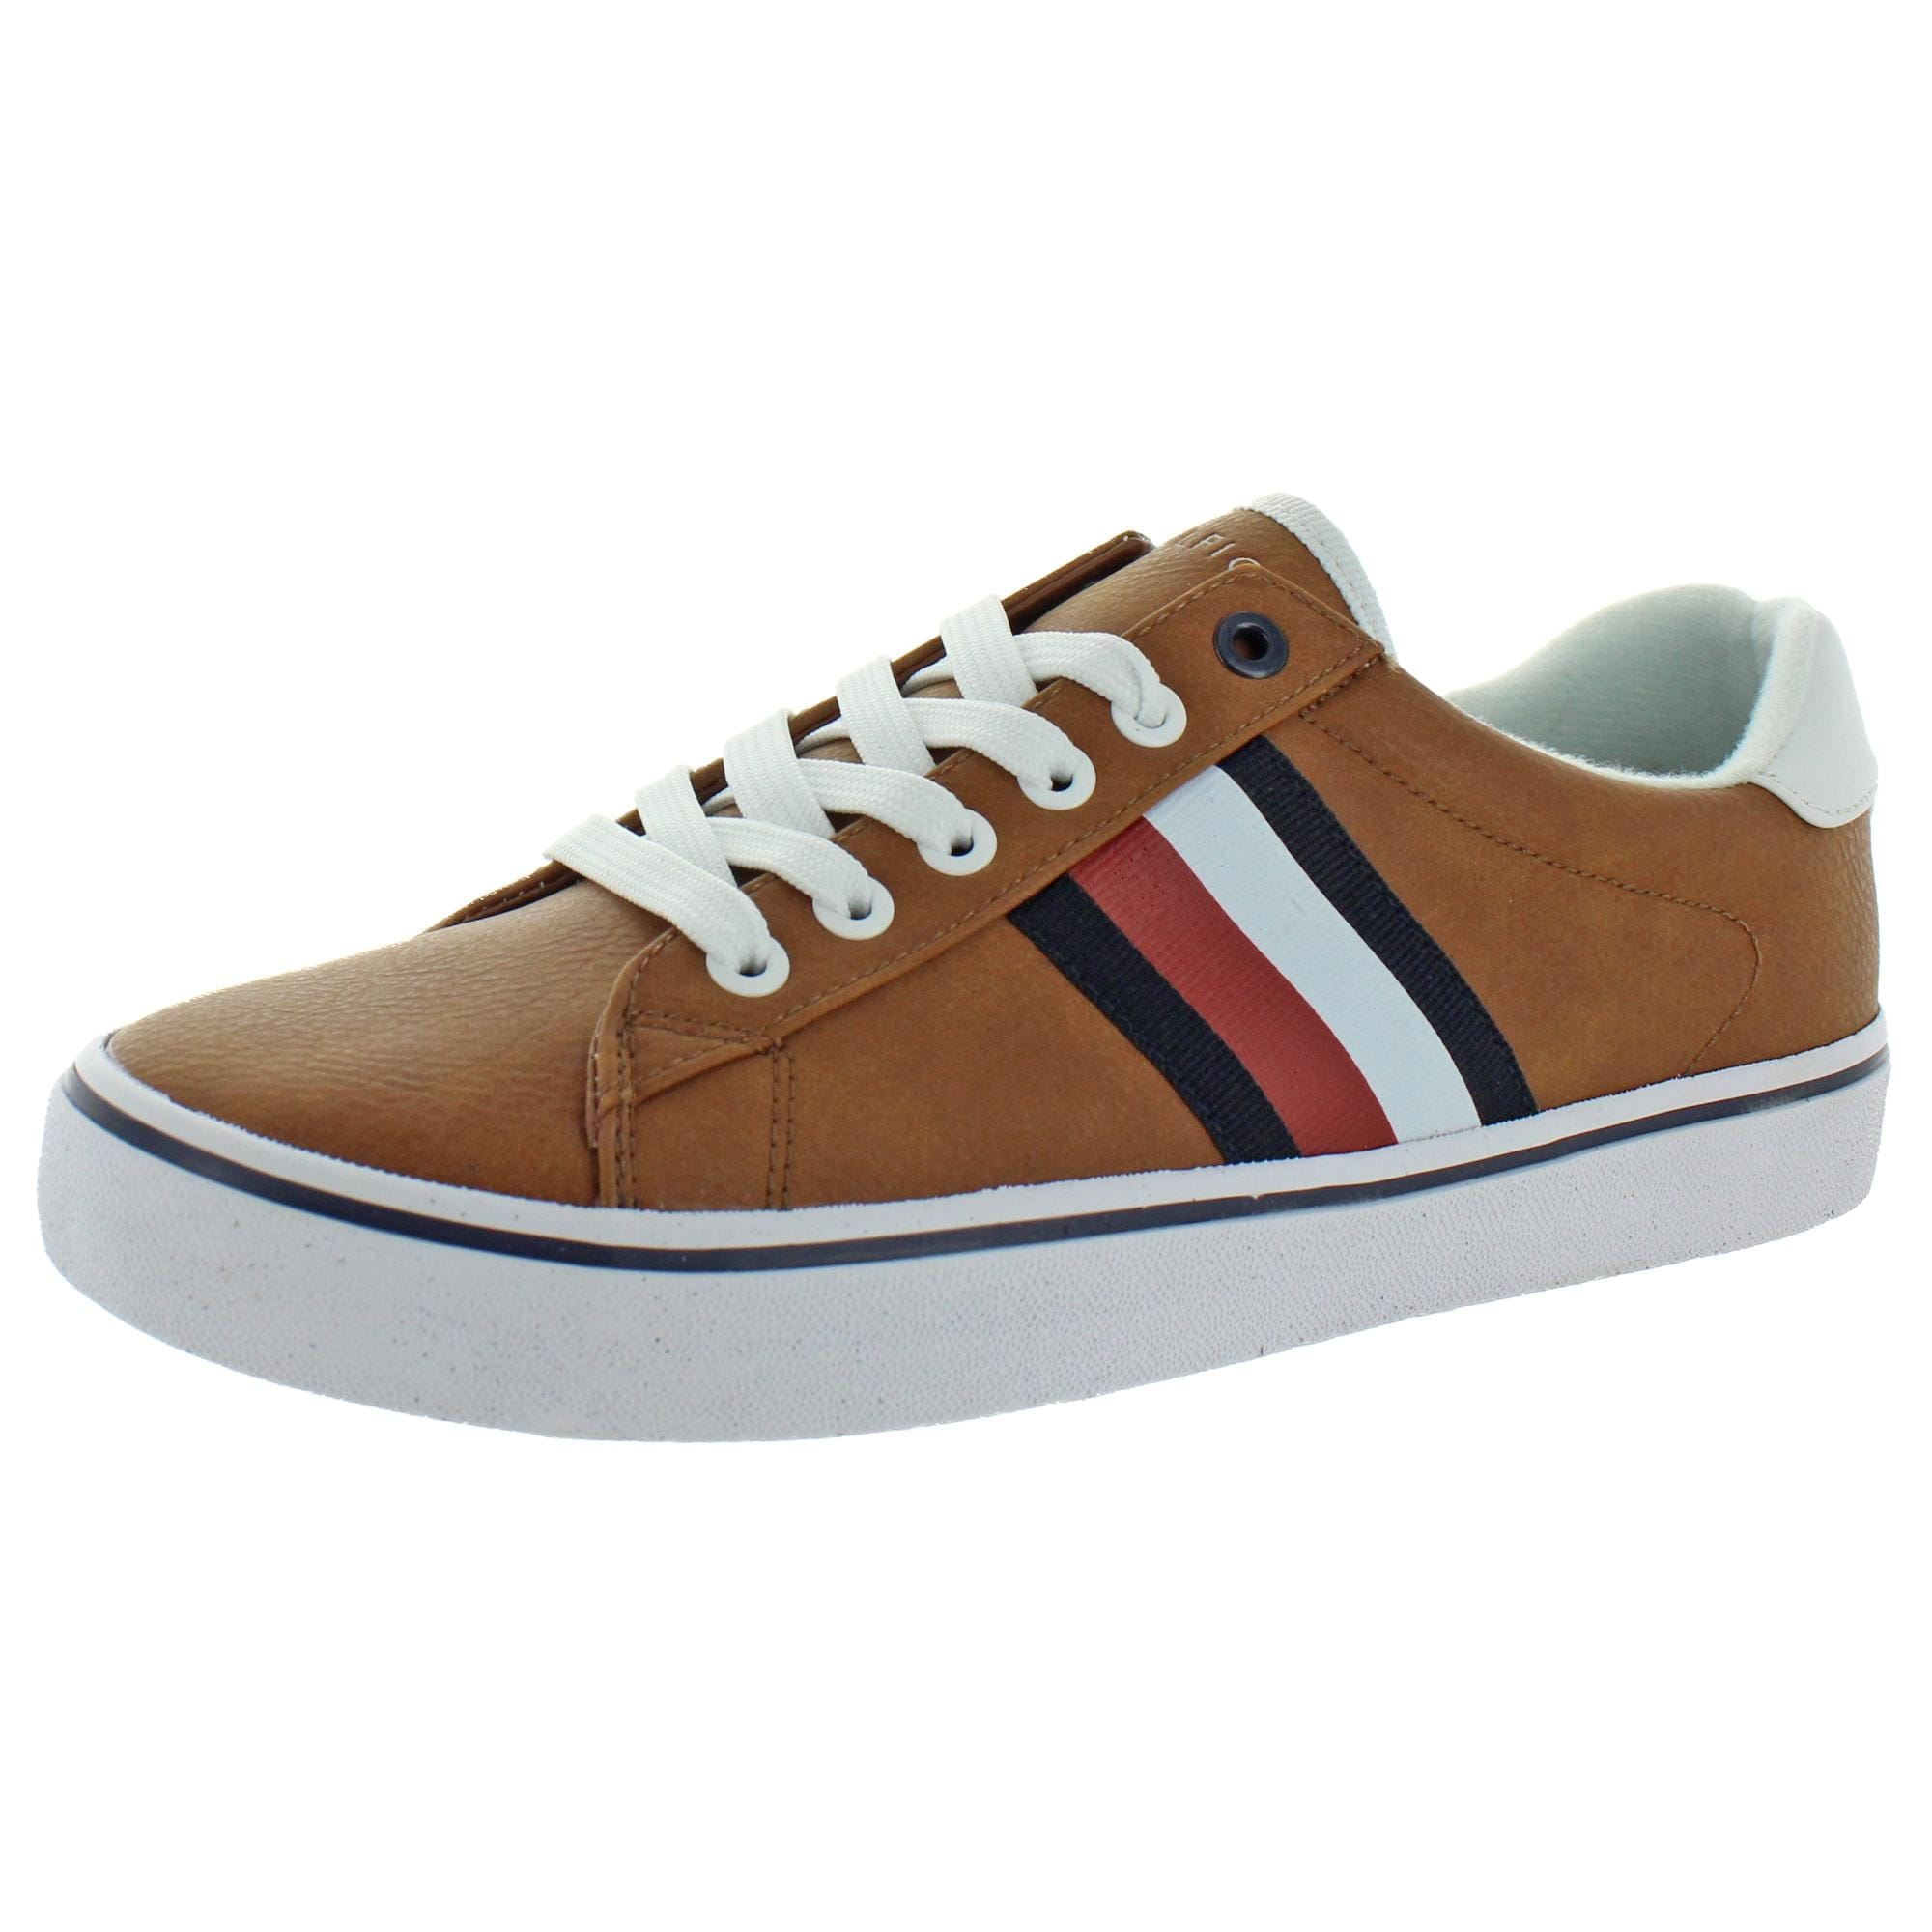 mens leather skate shoes